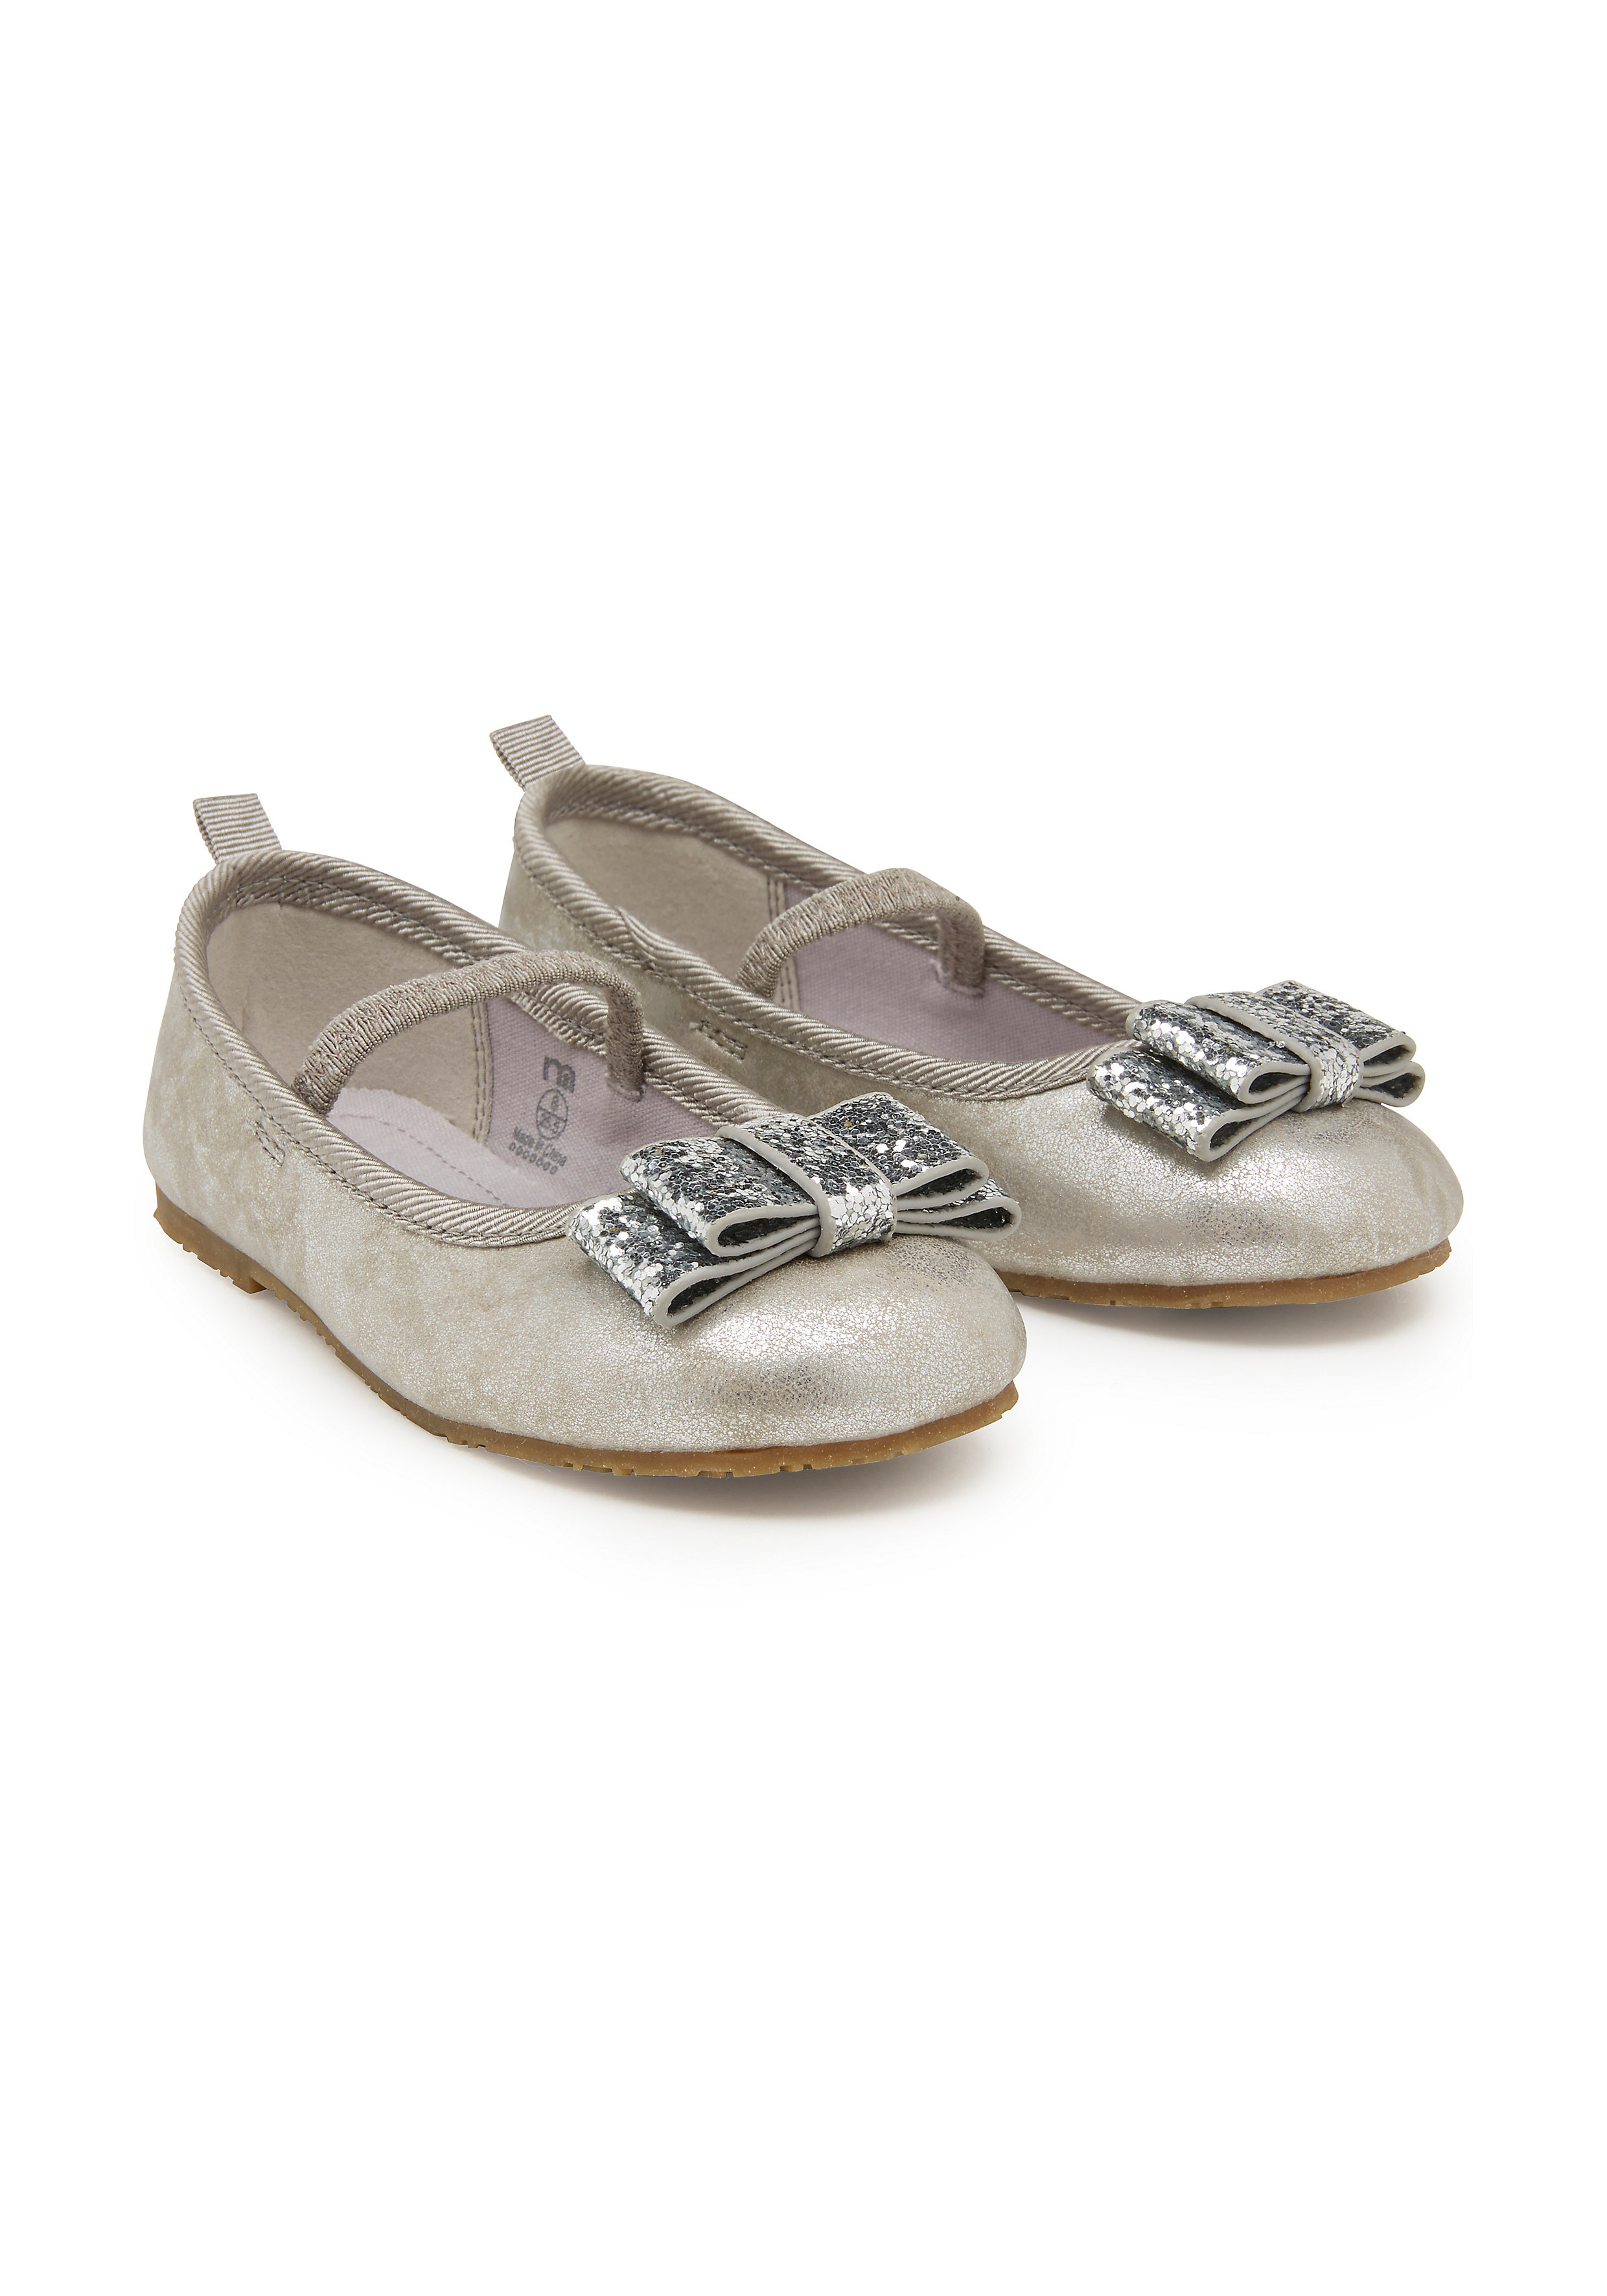 Mothercare | Girls Glitter Shoes - Silver